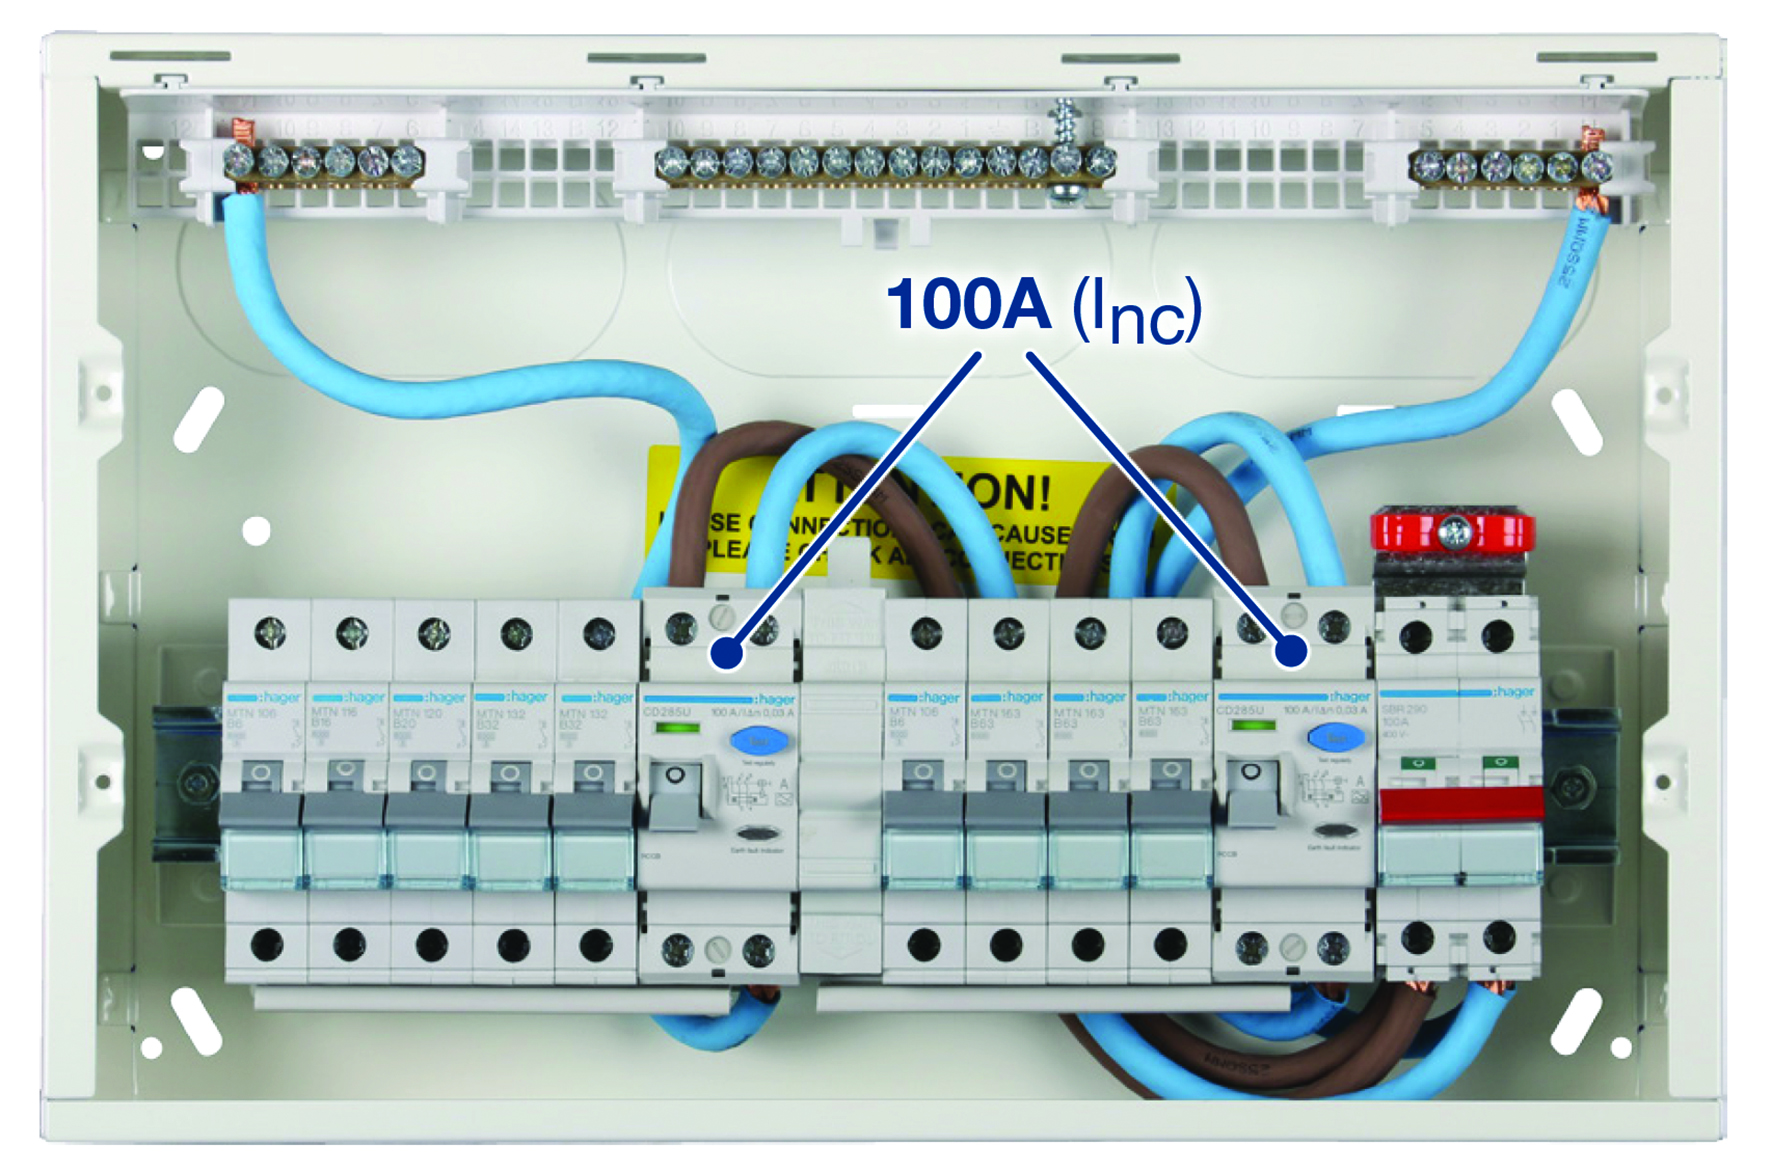 Hager Electrical Fuse Box : Overload protection hager explains what you need to know